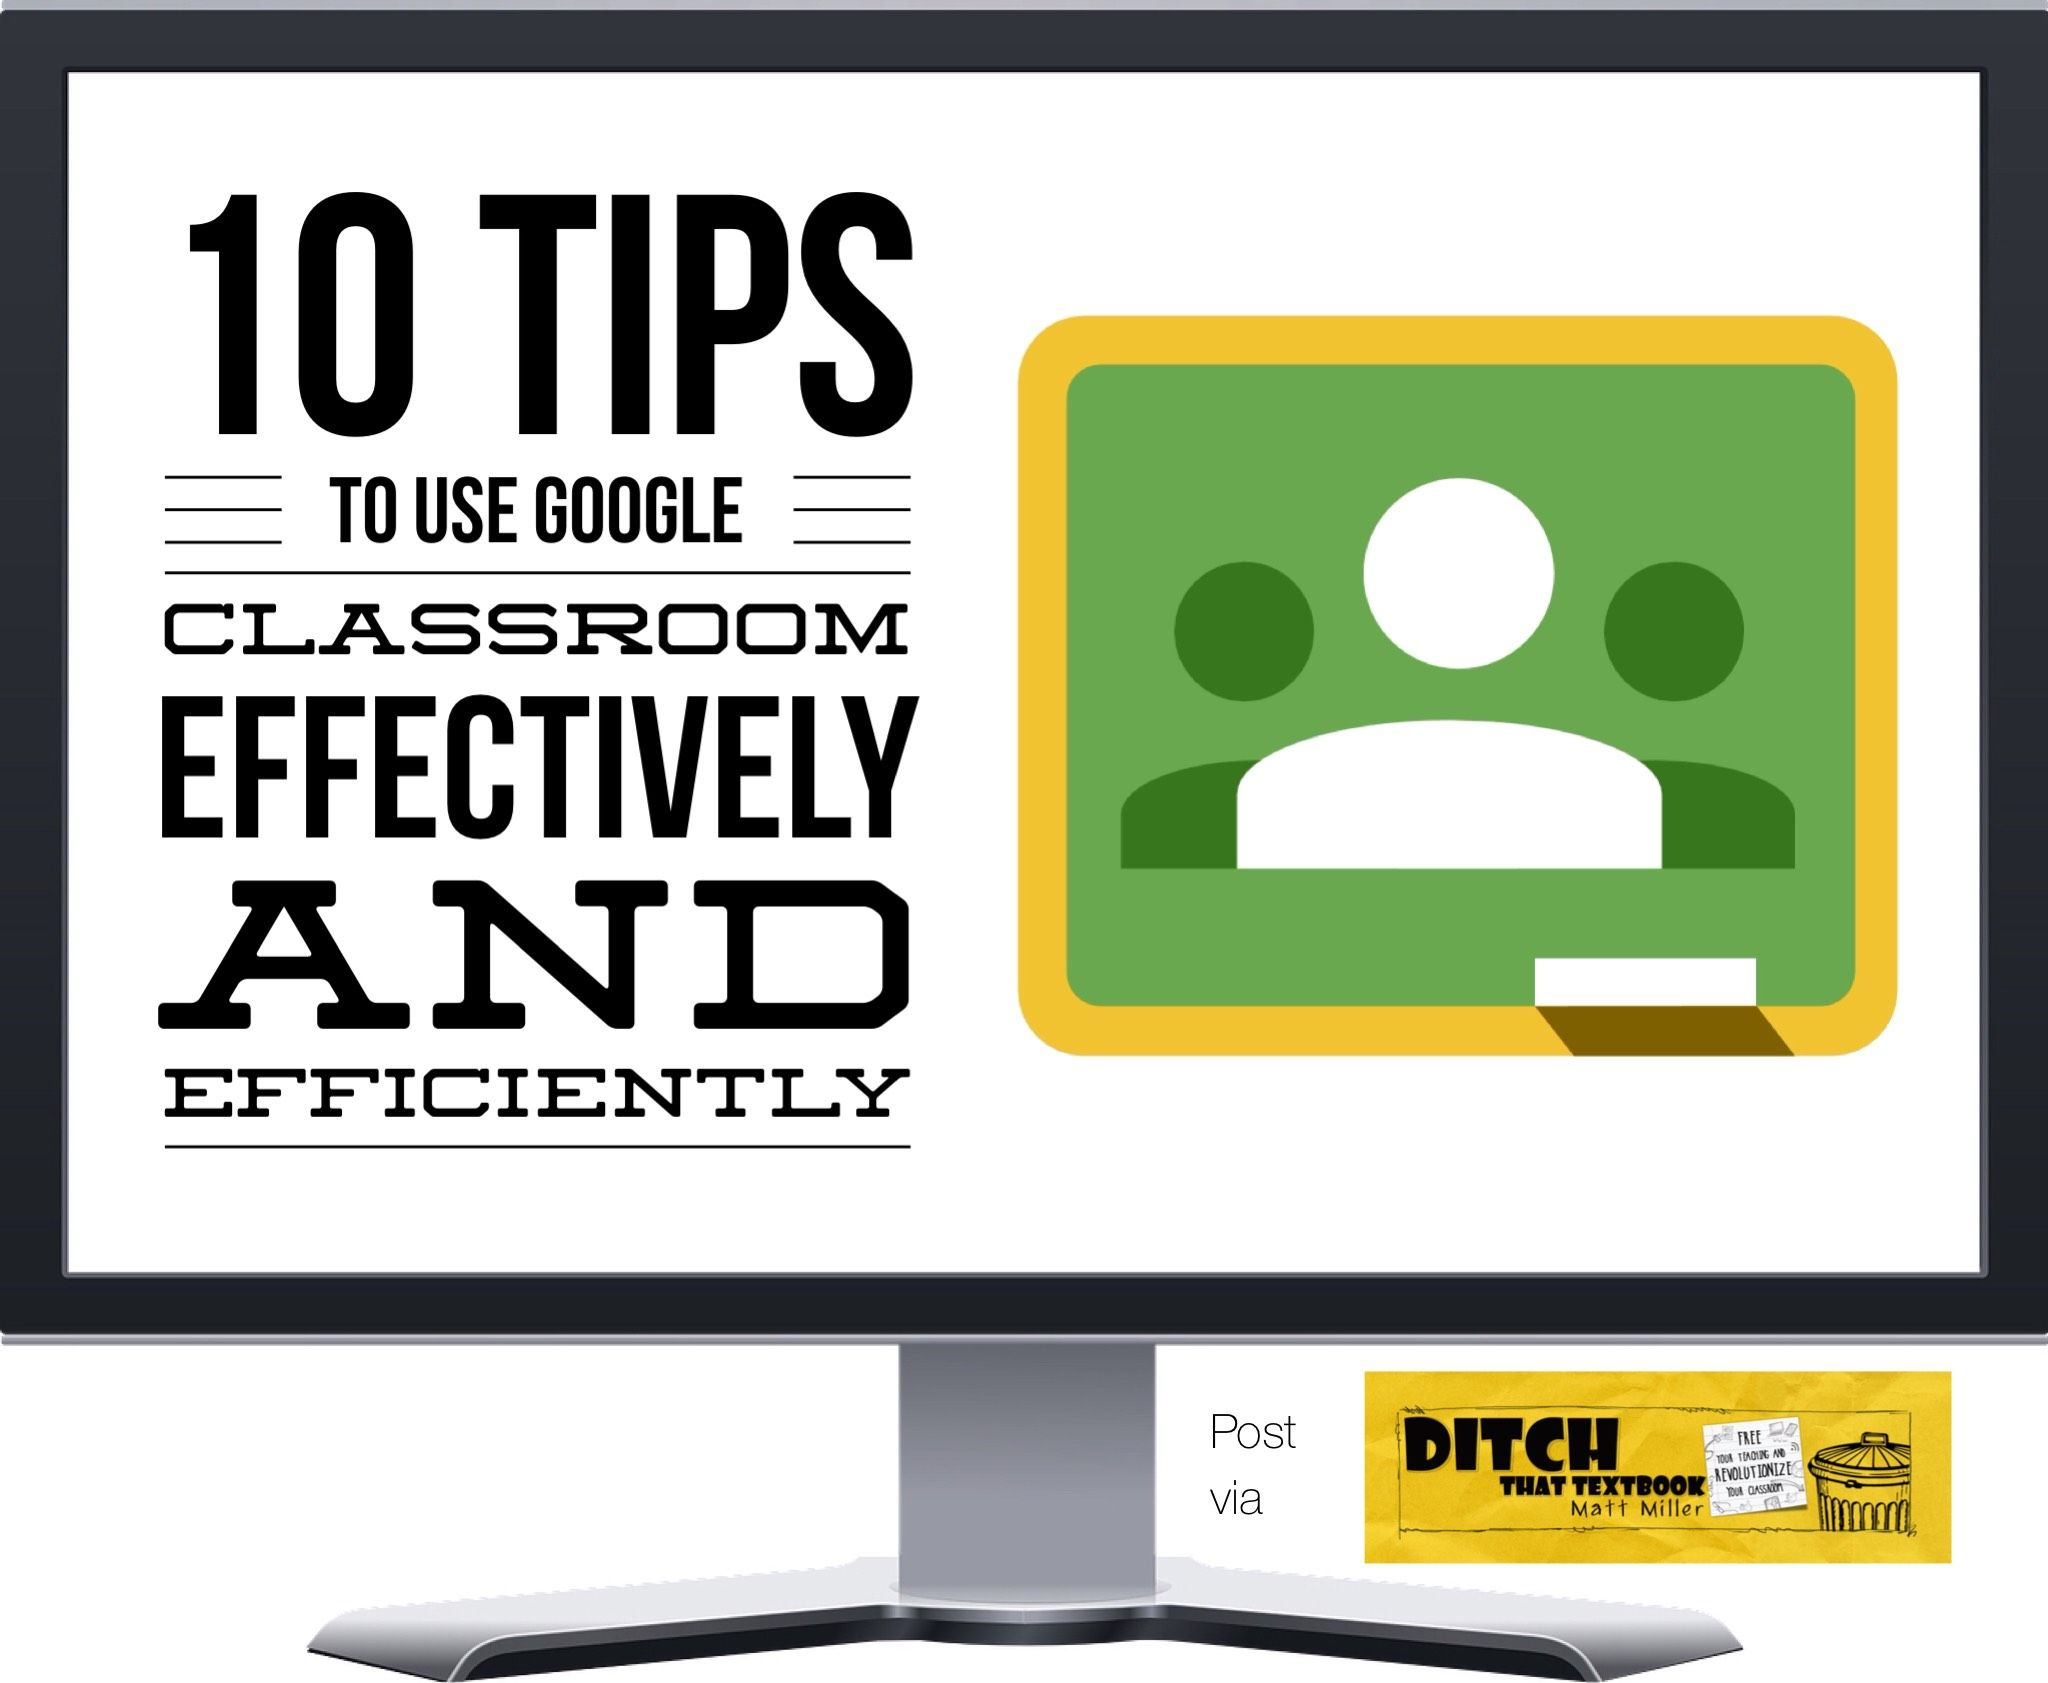 10 tips to use Google Classroom effectively and